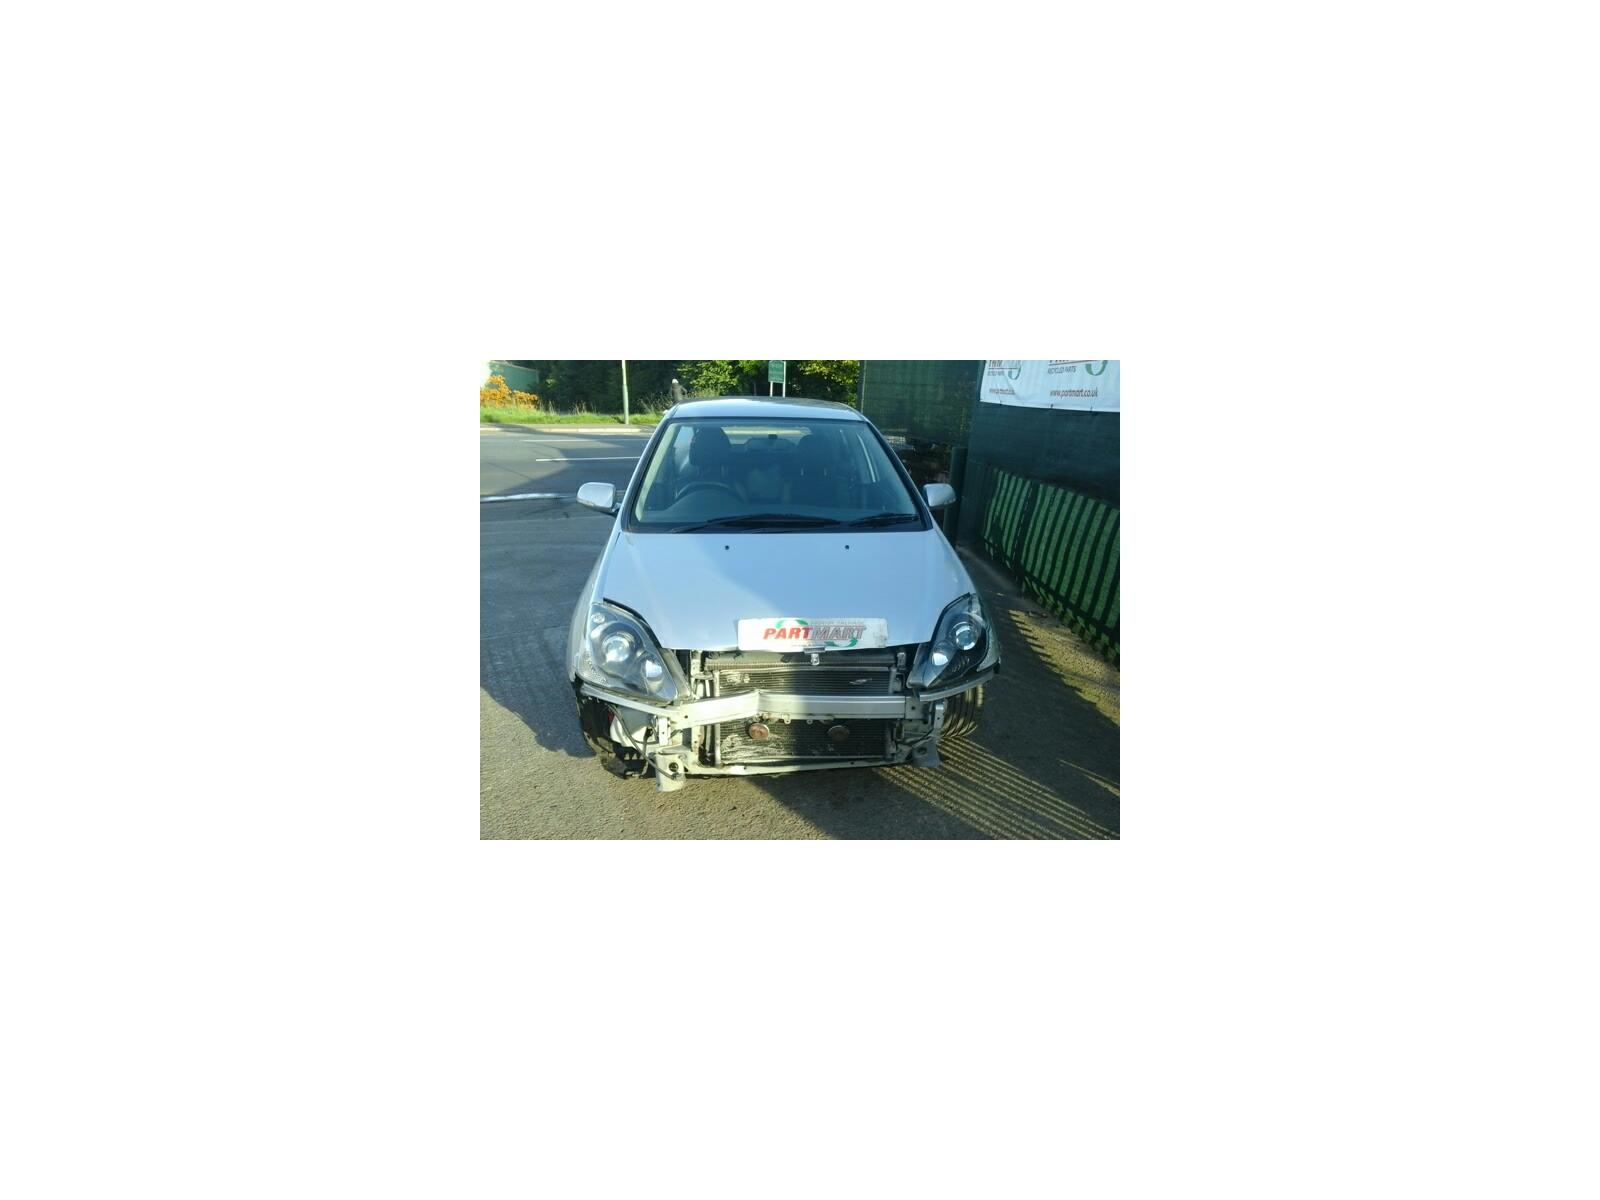 2004 Honda Civic 5 Door Hatchback